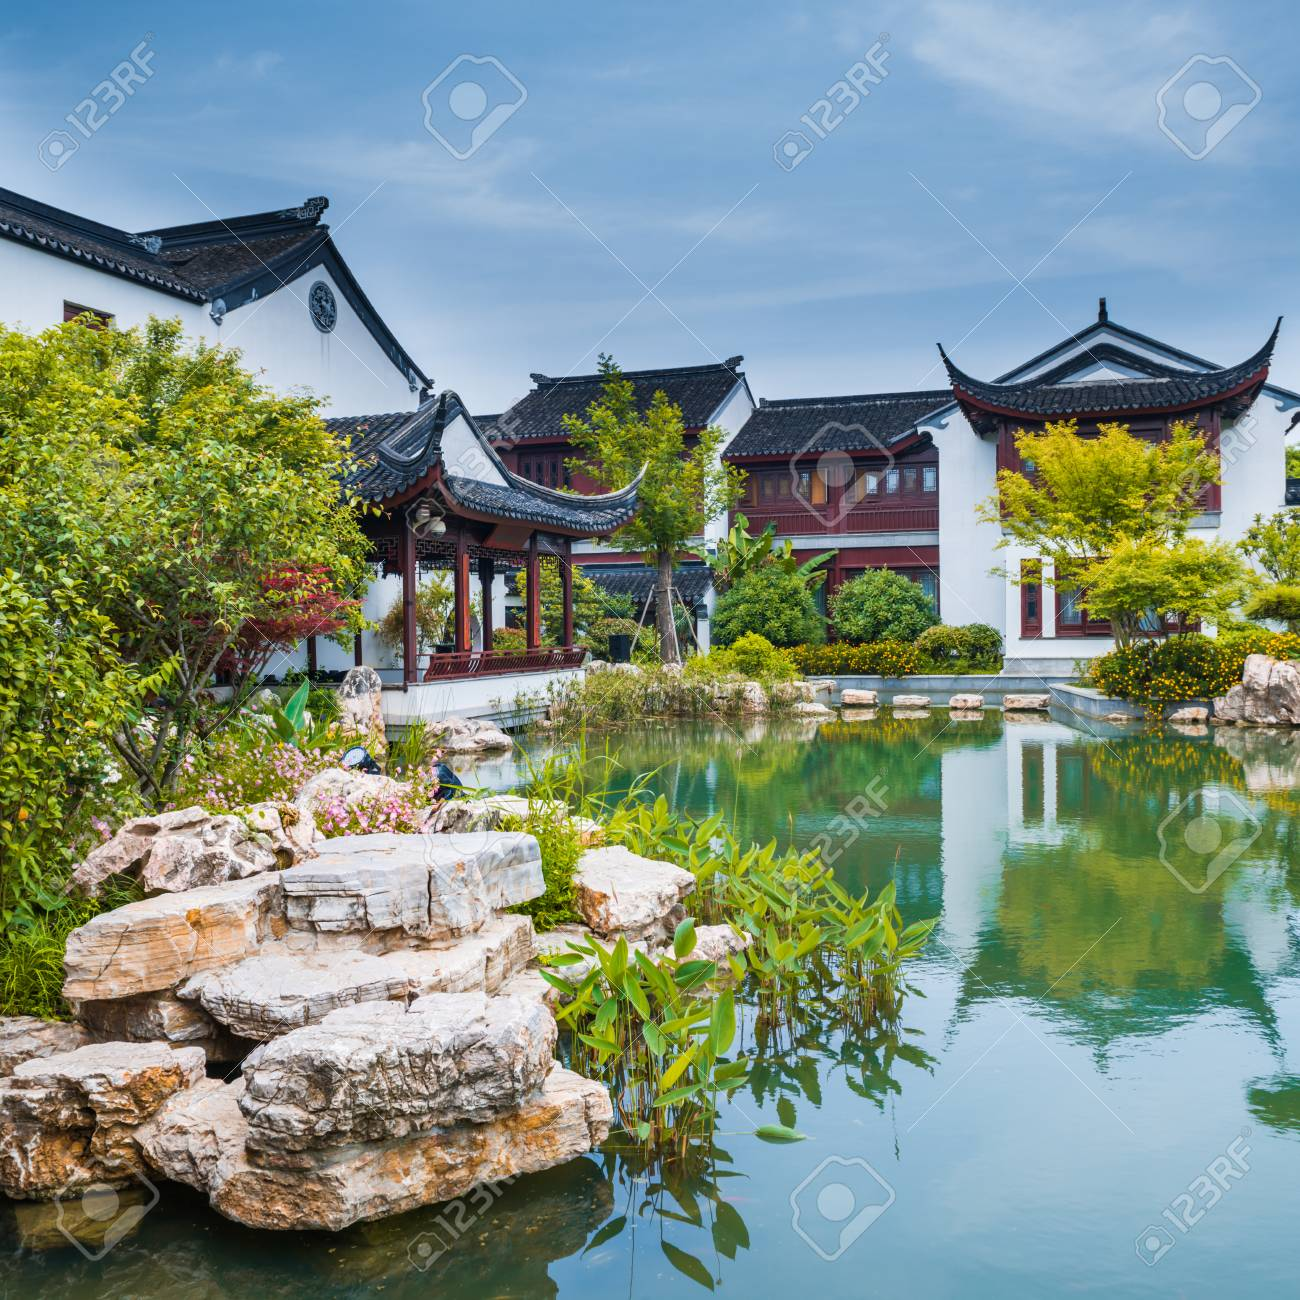 Ancient Chinese Garden Stock Photo Picture And Royalty Free Image